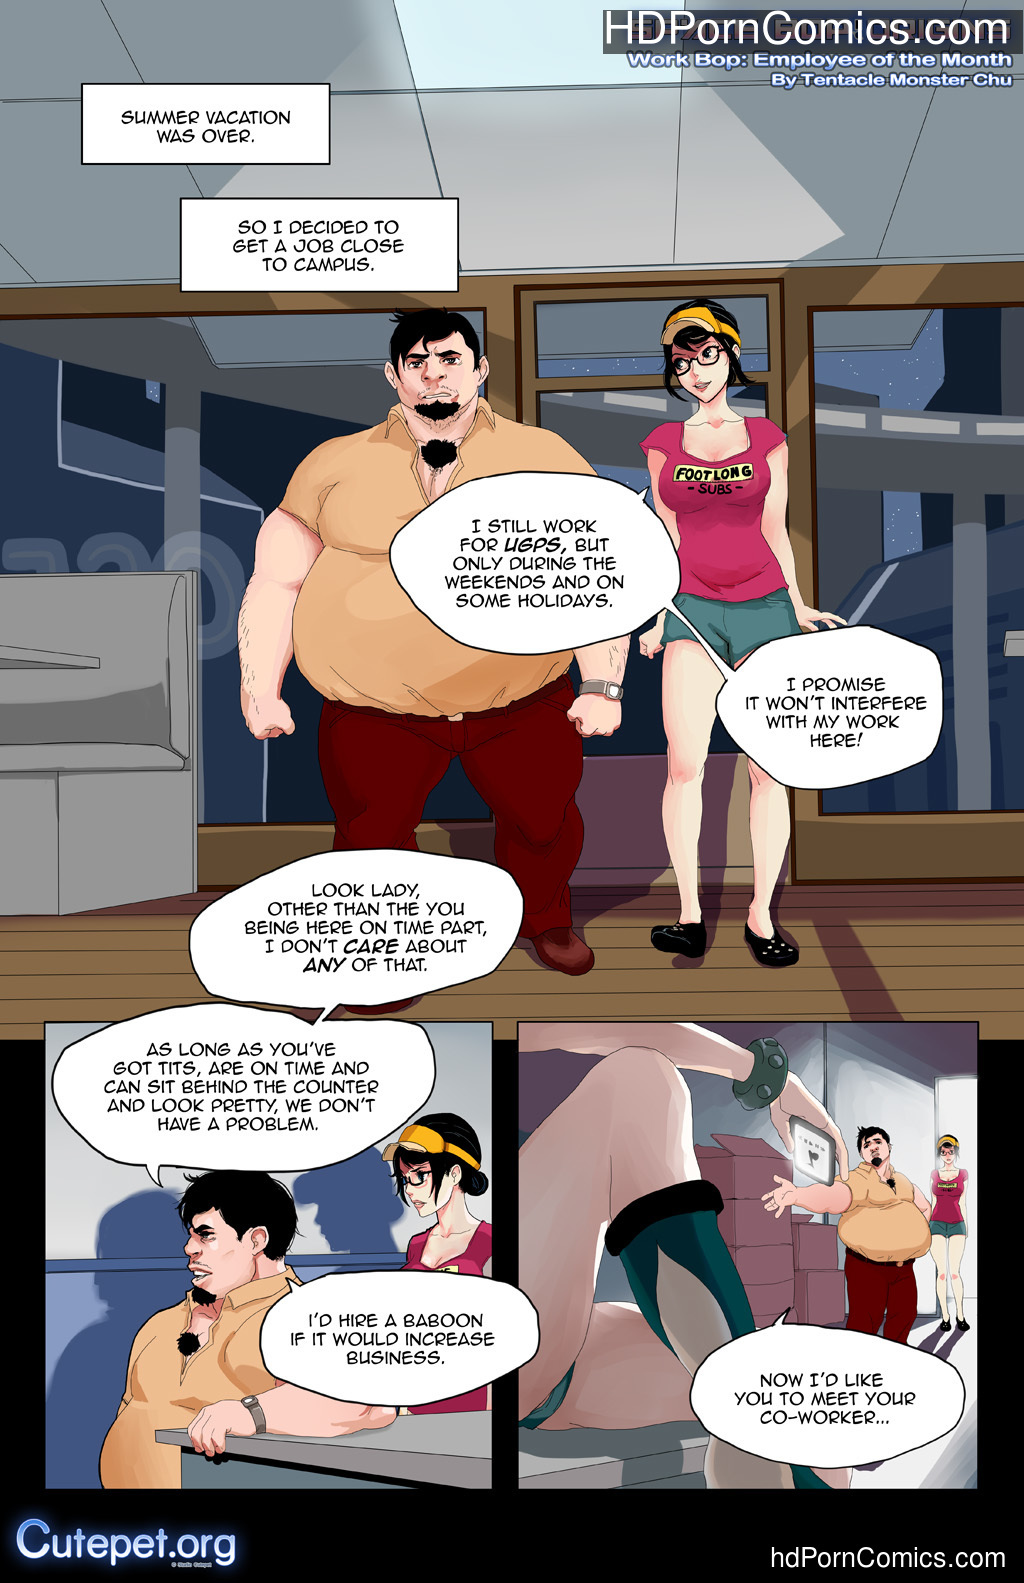 Cutepet- Employee of the Month free Cartoon Porn Comic